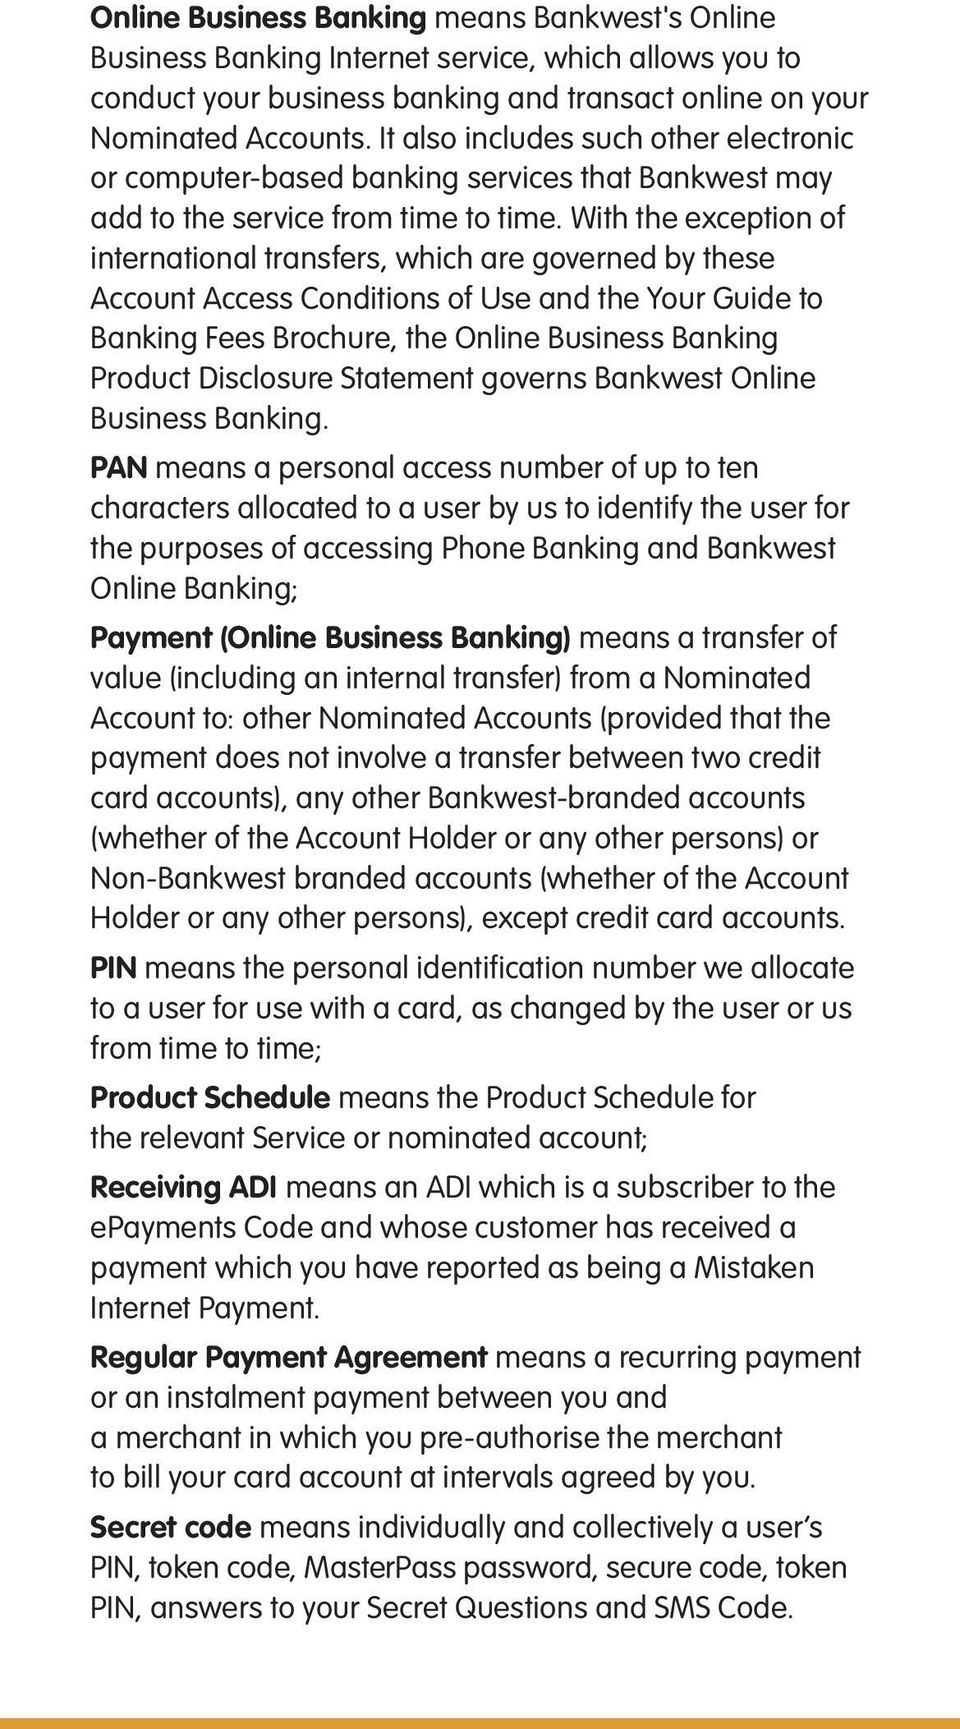 With the exception of international transfers, which are governed by these Account Access Conditions of Use and the Your Guide to Banking Fees Brochure, the Online Business Banking Product Disclosure